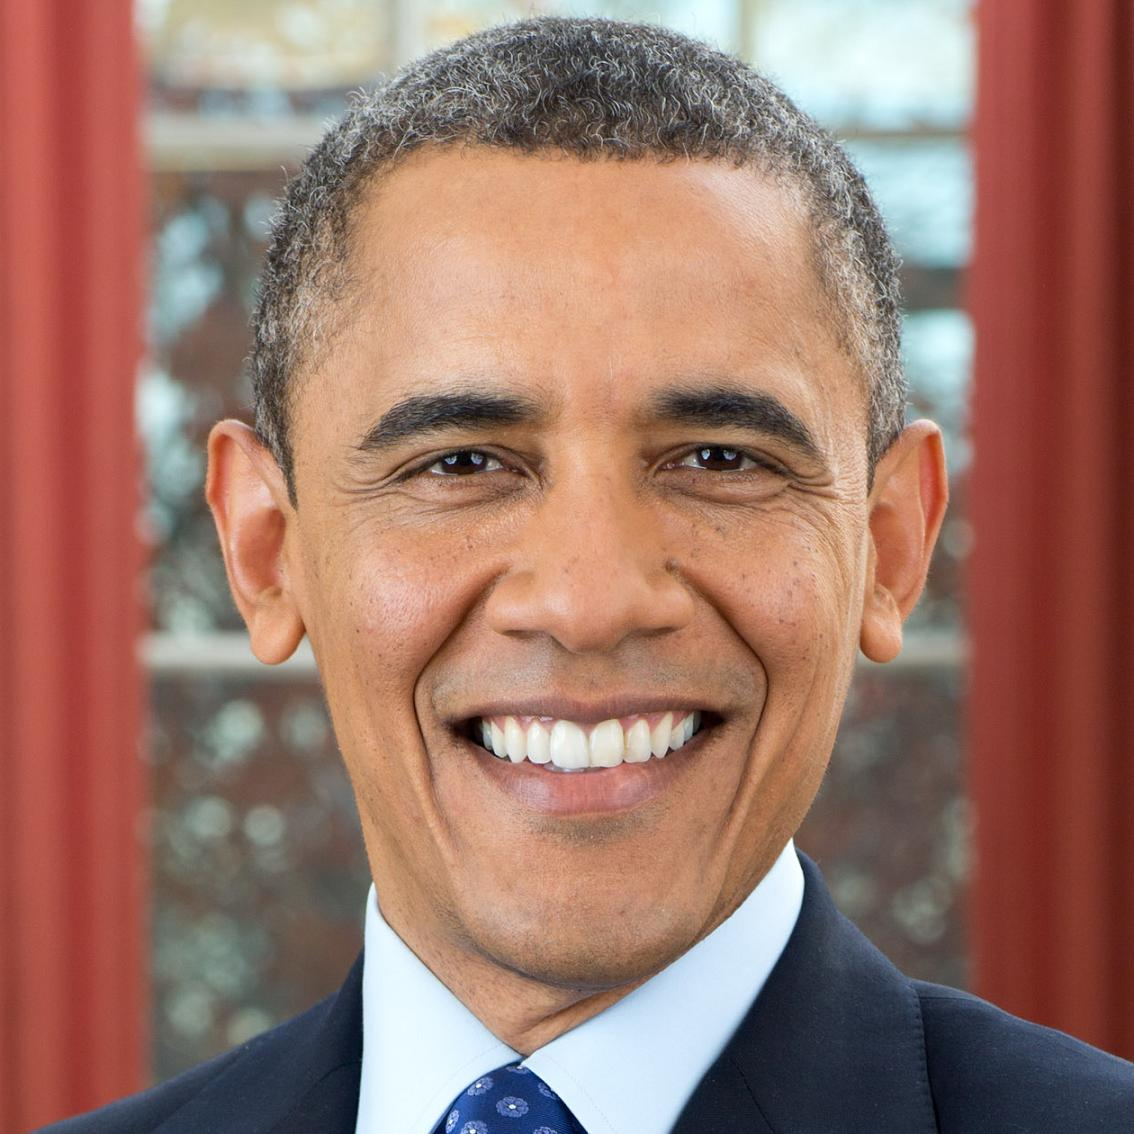 Barack Obama Bio, Net Worth, Facts